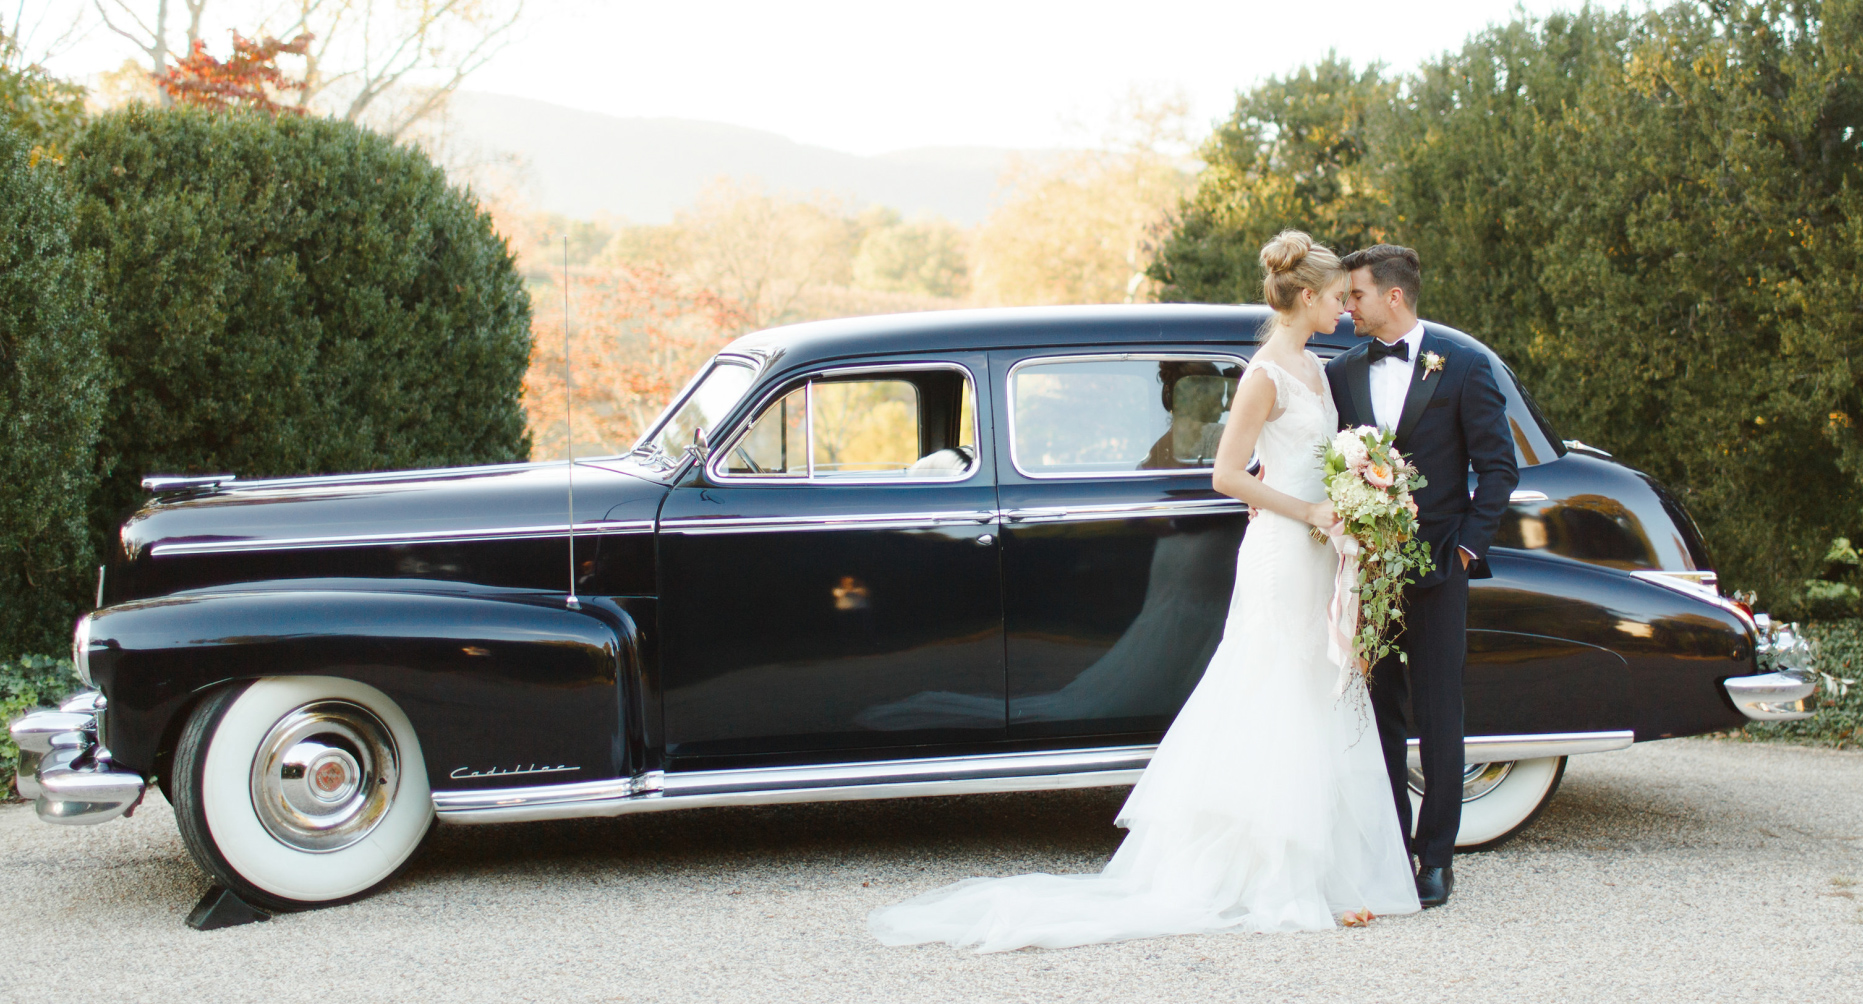 Wedding Transportation - Guests, bridal party, VIPs and couples get-aways and antique limousines.